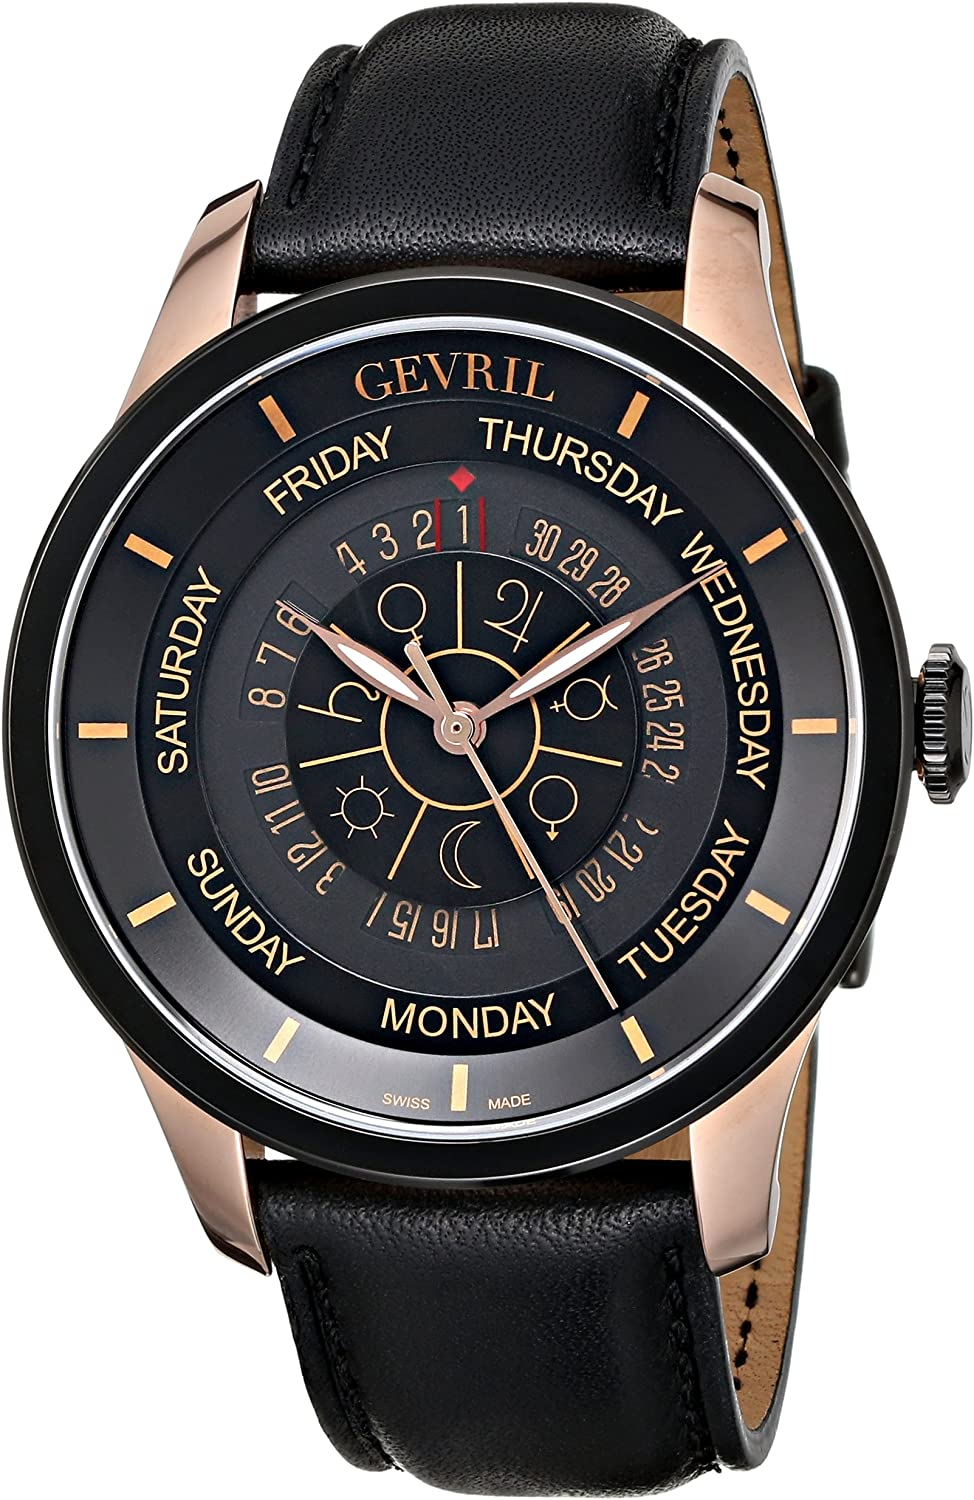 Gevril Columbus Circle Mens Swiss Automatic Black Leather Strap Watch, Model 2004